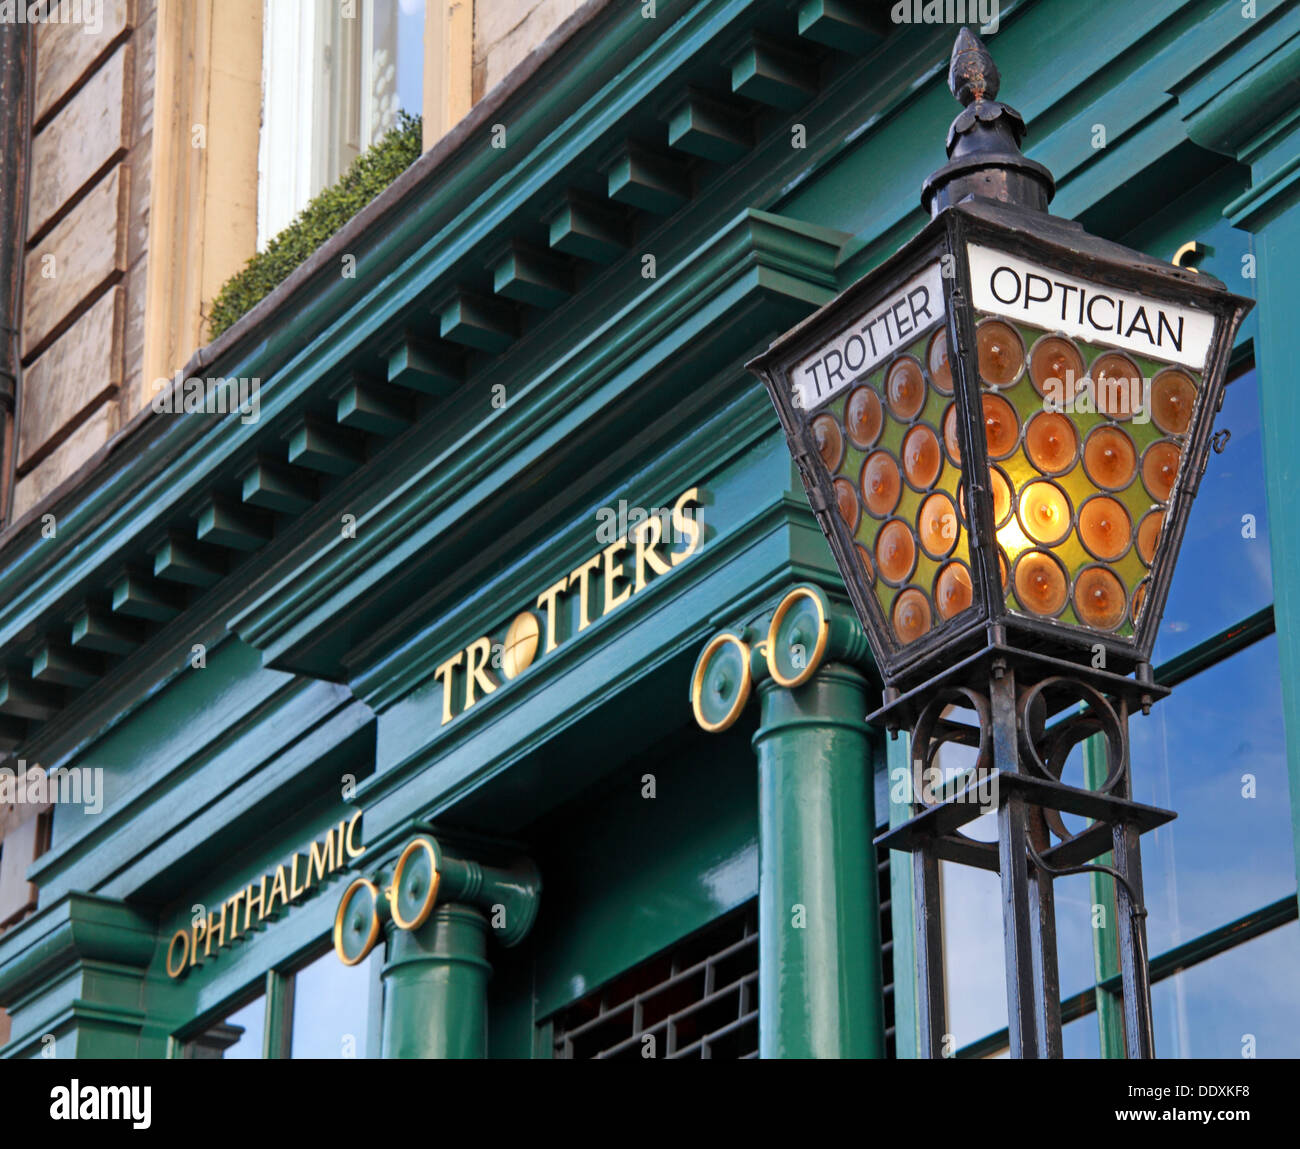 Trotter,NewTown,scotland,city,centre,light,lamp,glasses,spectacles,humour,humourous,door,doorway,entrance,traditional,Opticians,Opthalmic,architectural,close,funny,closeup,detail,eye,GB,shop,landscape,nobody,opthalmist,optician,opticians,shop,sign,signs,specialist,store,fringe,green,painted,EH2,2LE,GoTonySmith,@HotpixUK,John,Trotter,Buy Pictures of,Buy Images Of,Images of,Stock Images,Black & Lizars,John Trotter,Edinburgh Fringe,EH2 2LE